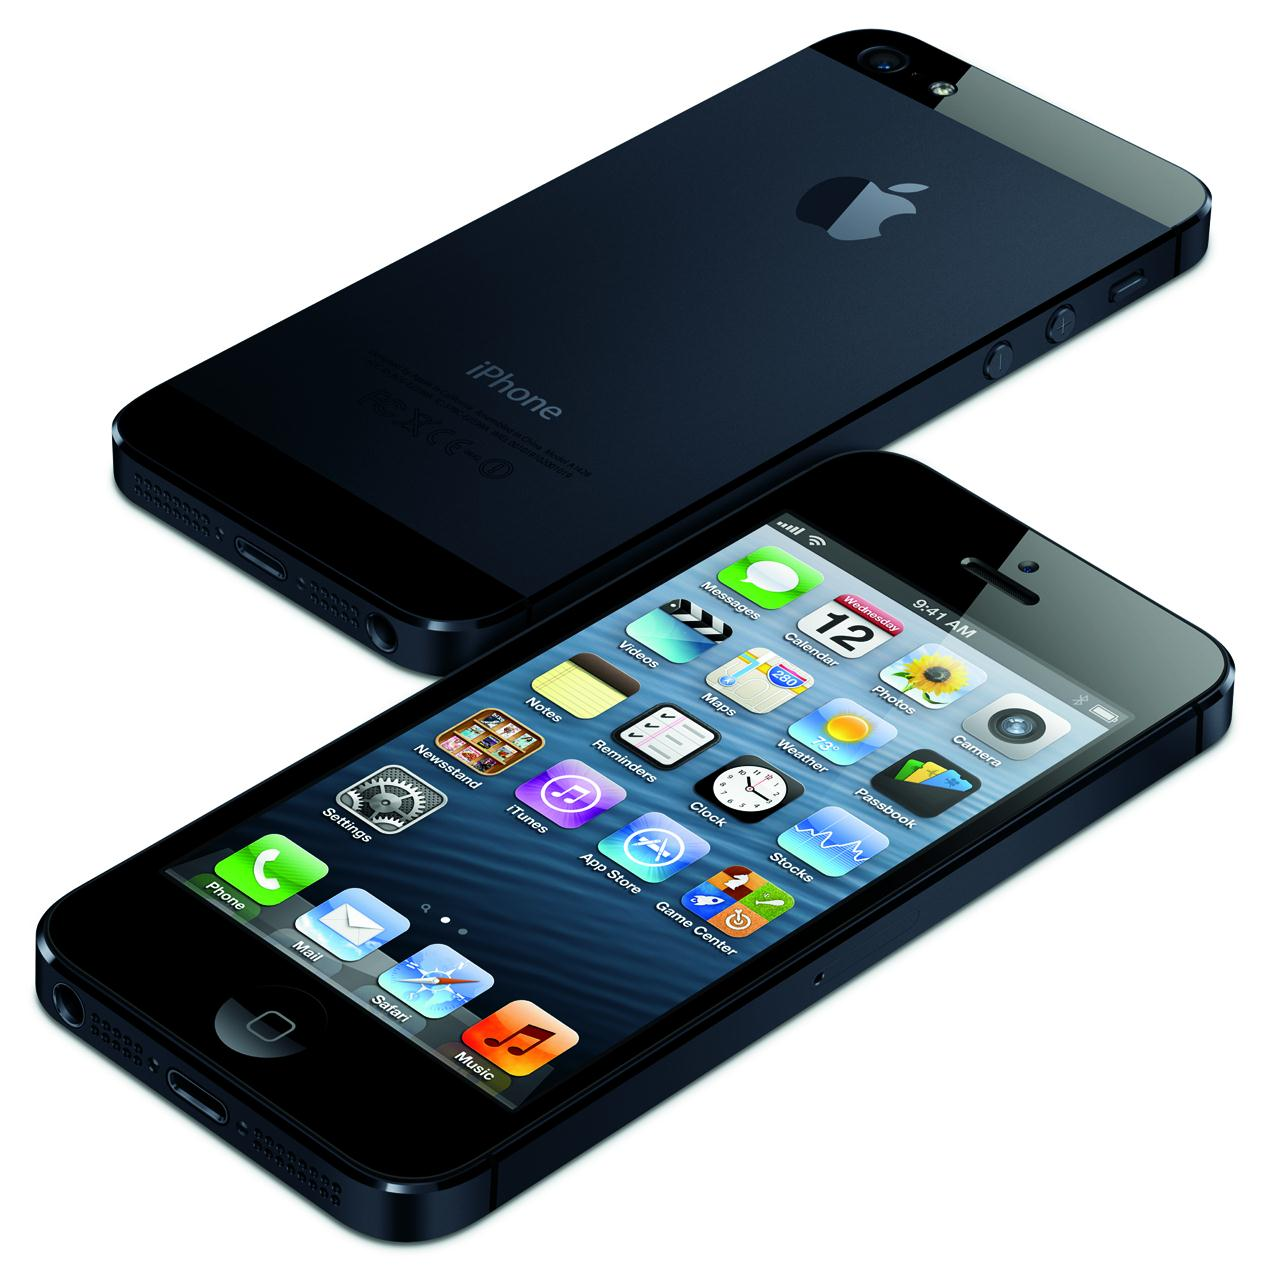 iPhone 5 Price in Nigeria – OgbongeBlog